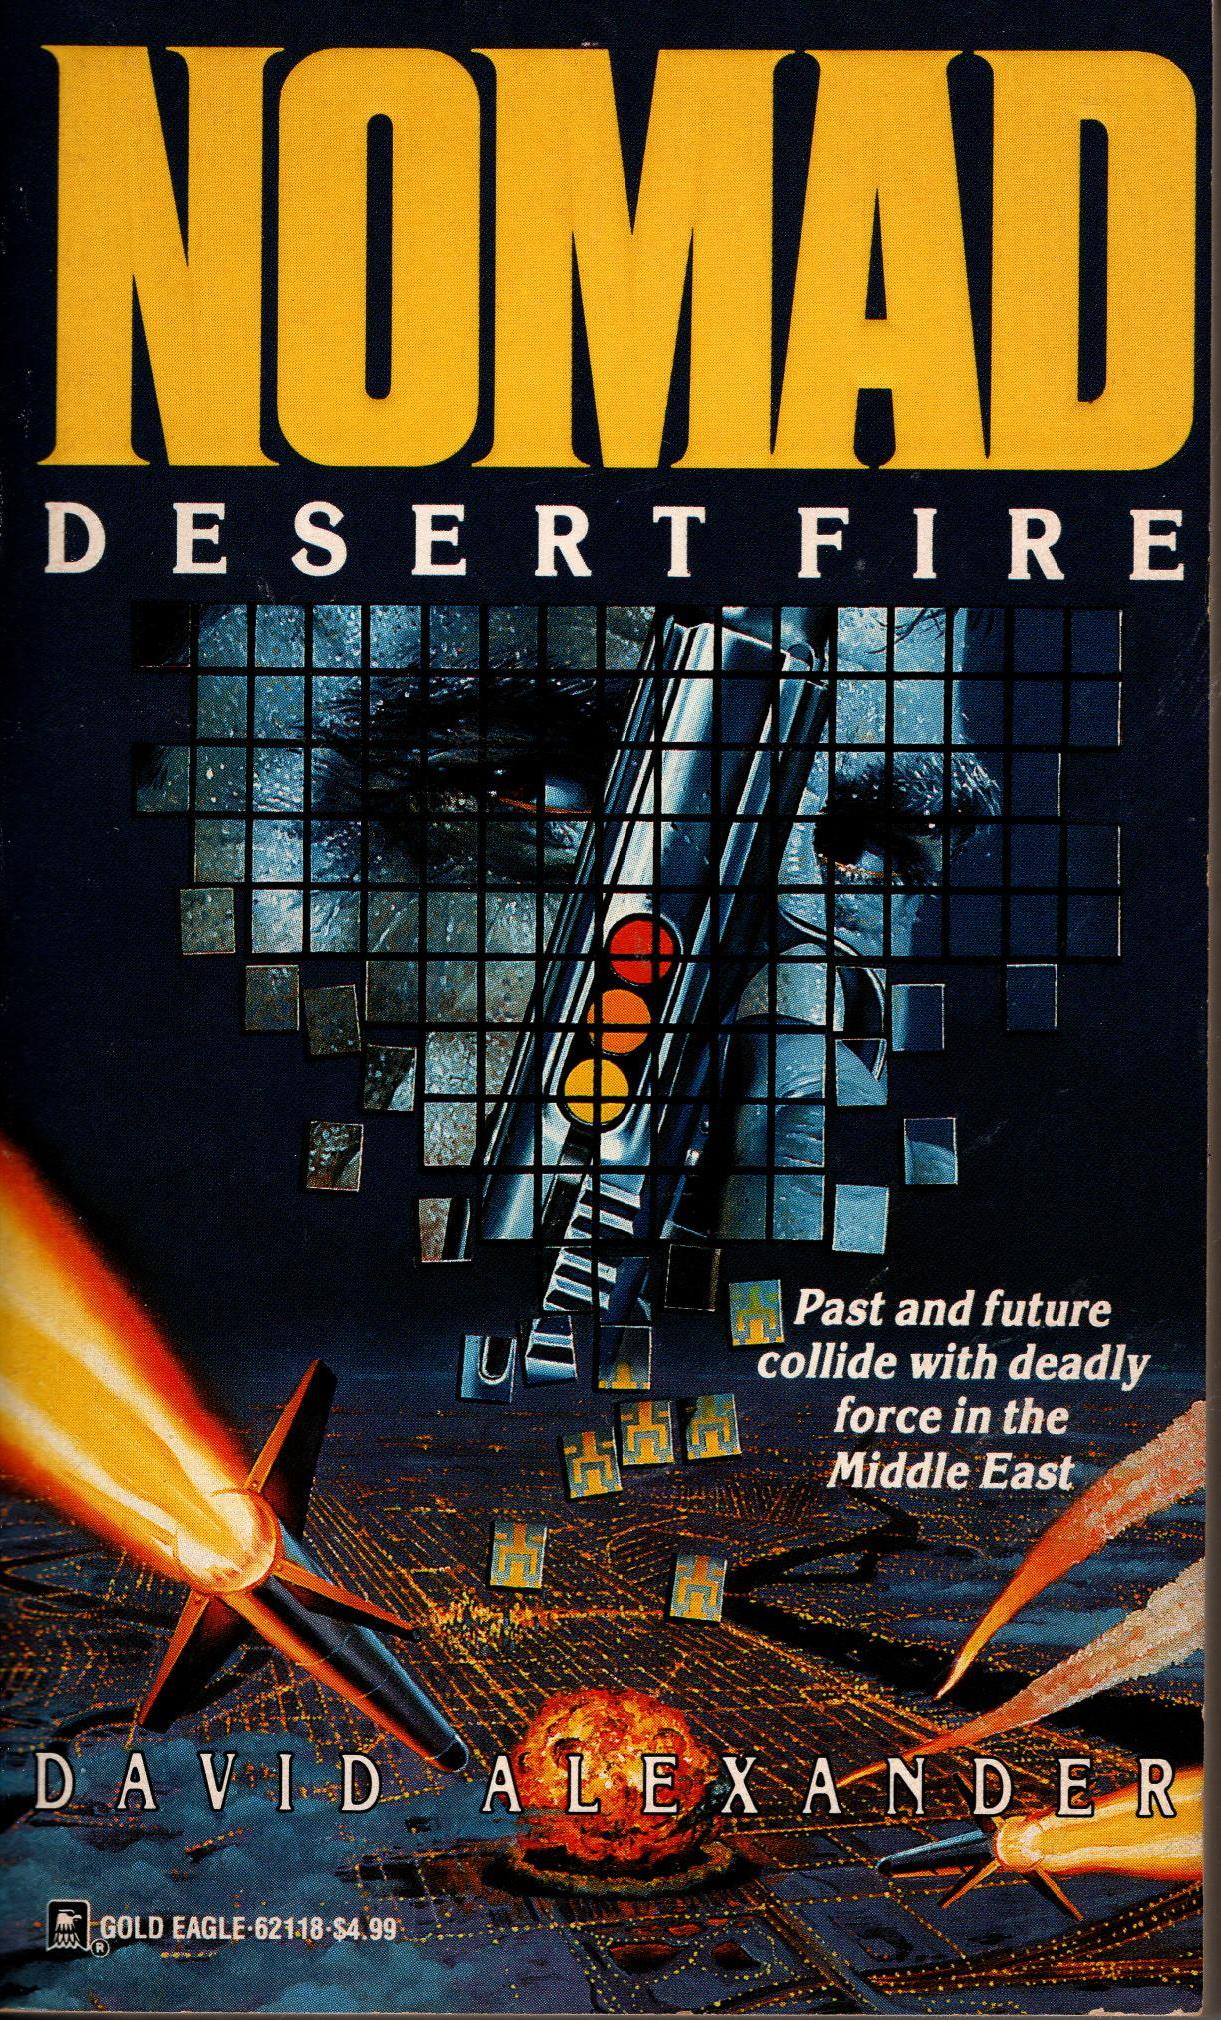 Image for DESERT FIRE